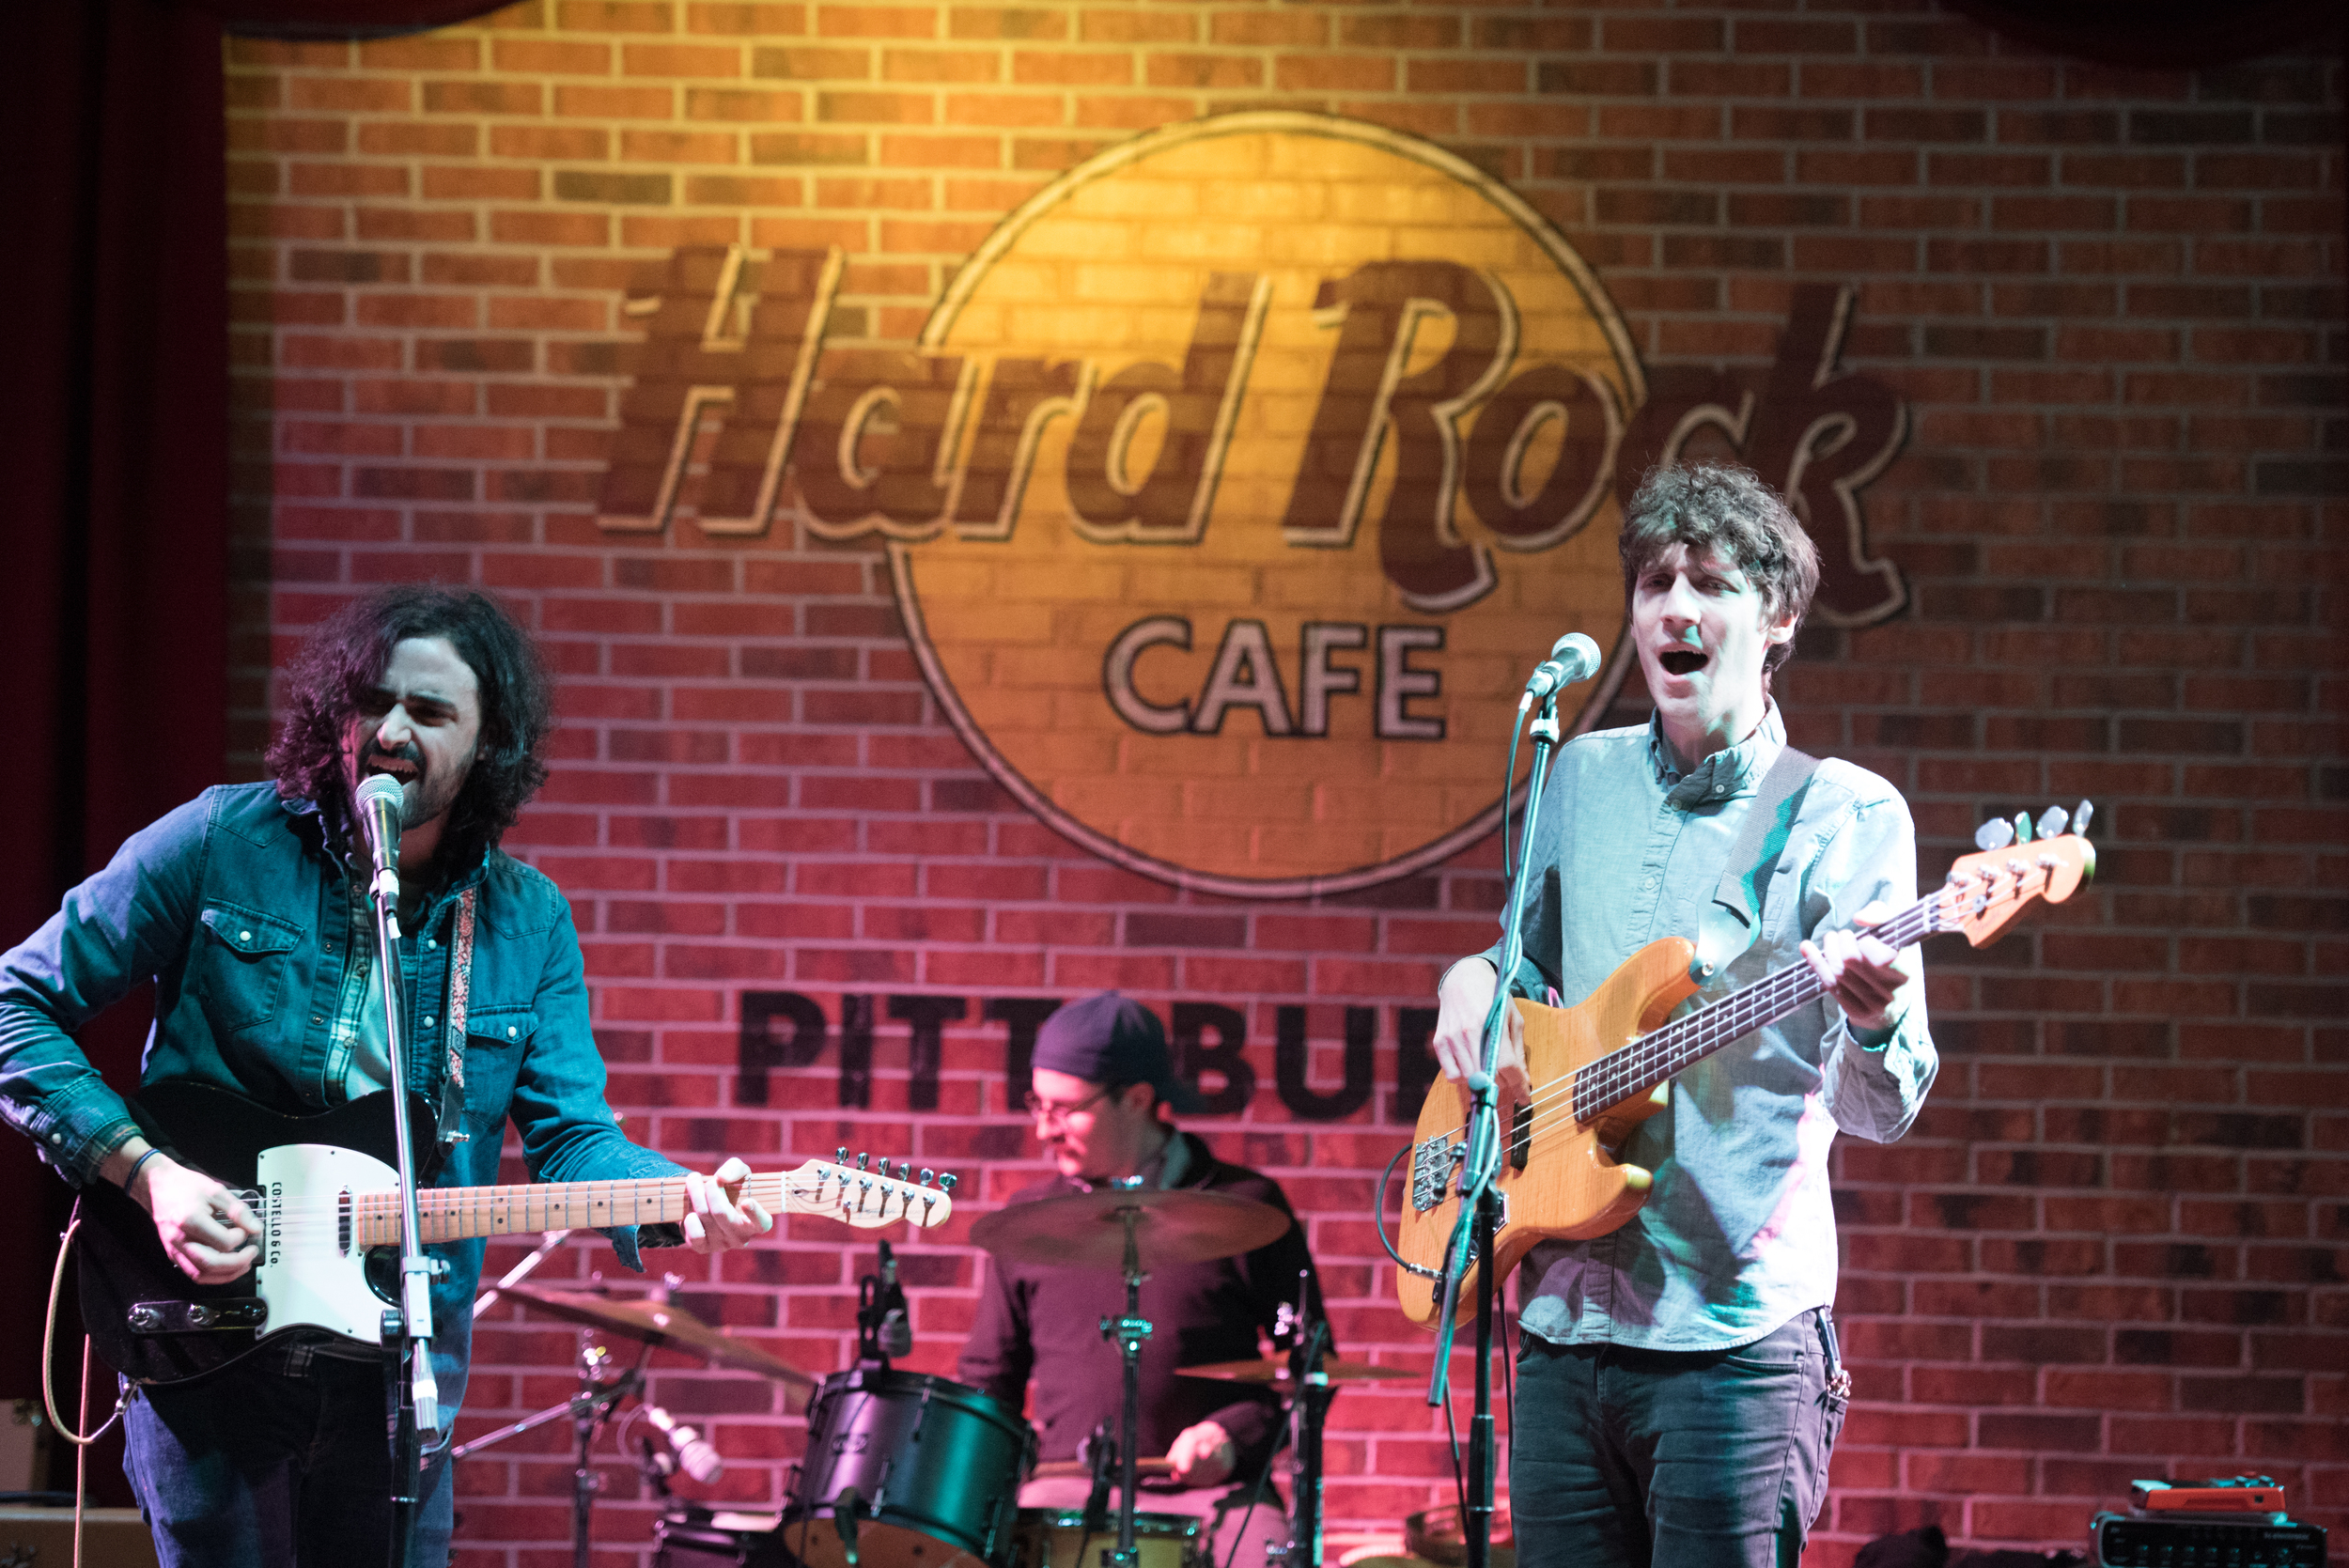 Cure Rock - Hard Rock Cafe - 3.26.15 - 104.jpg